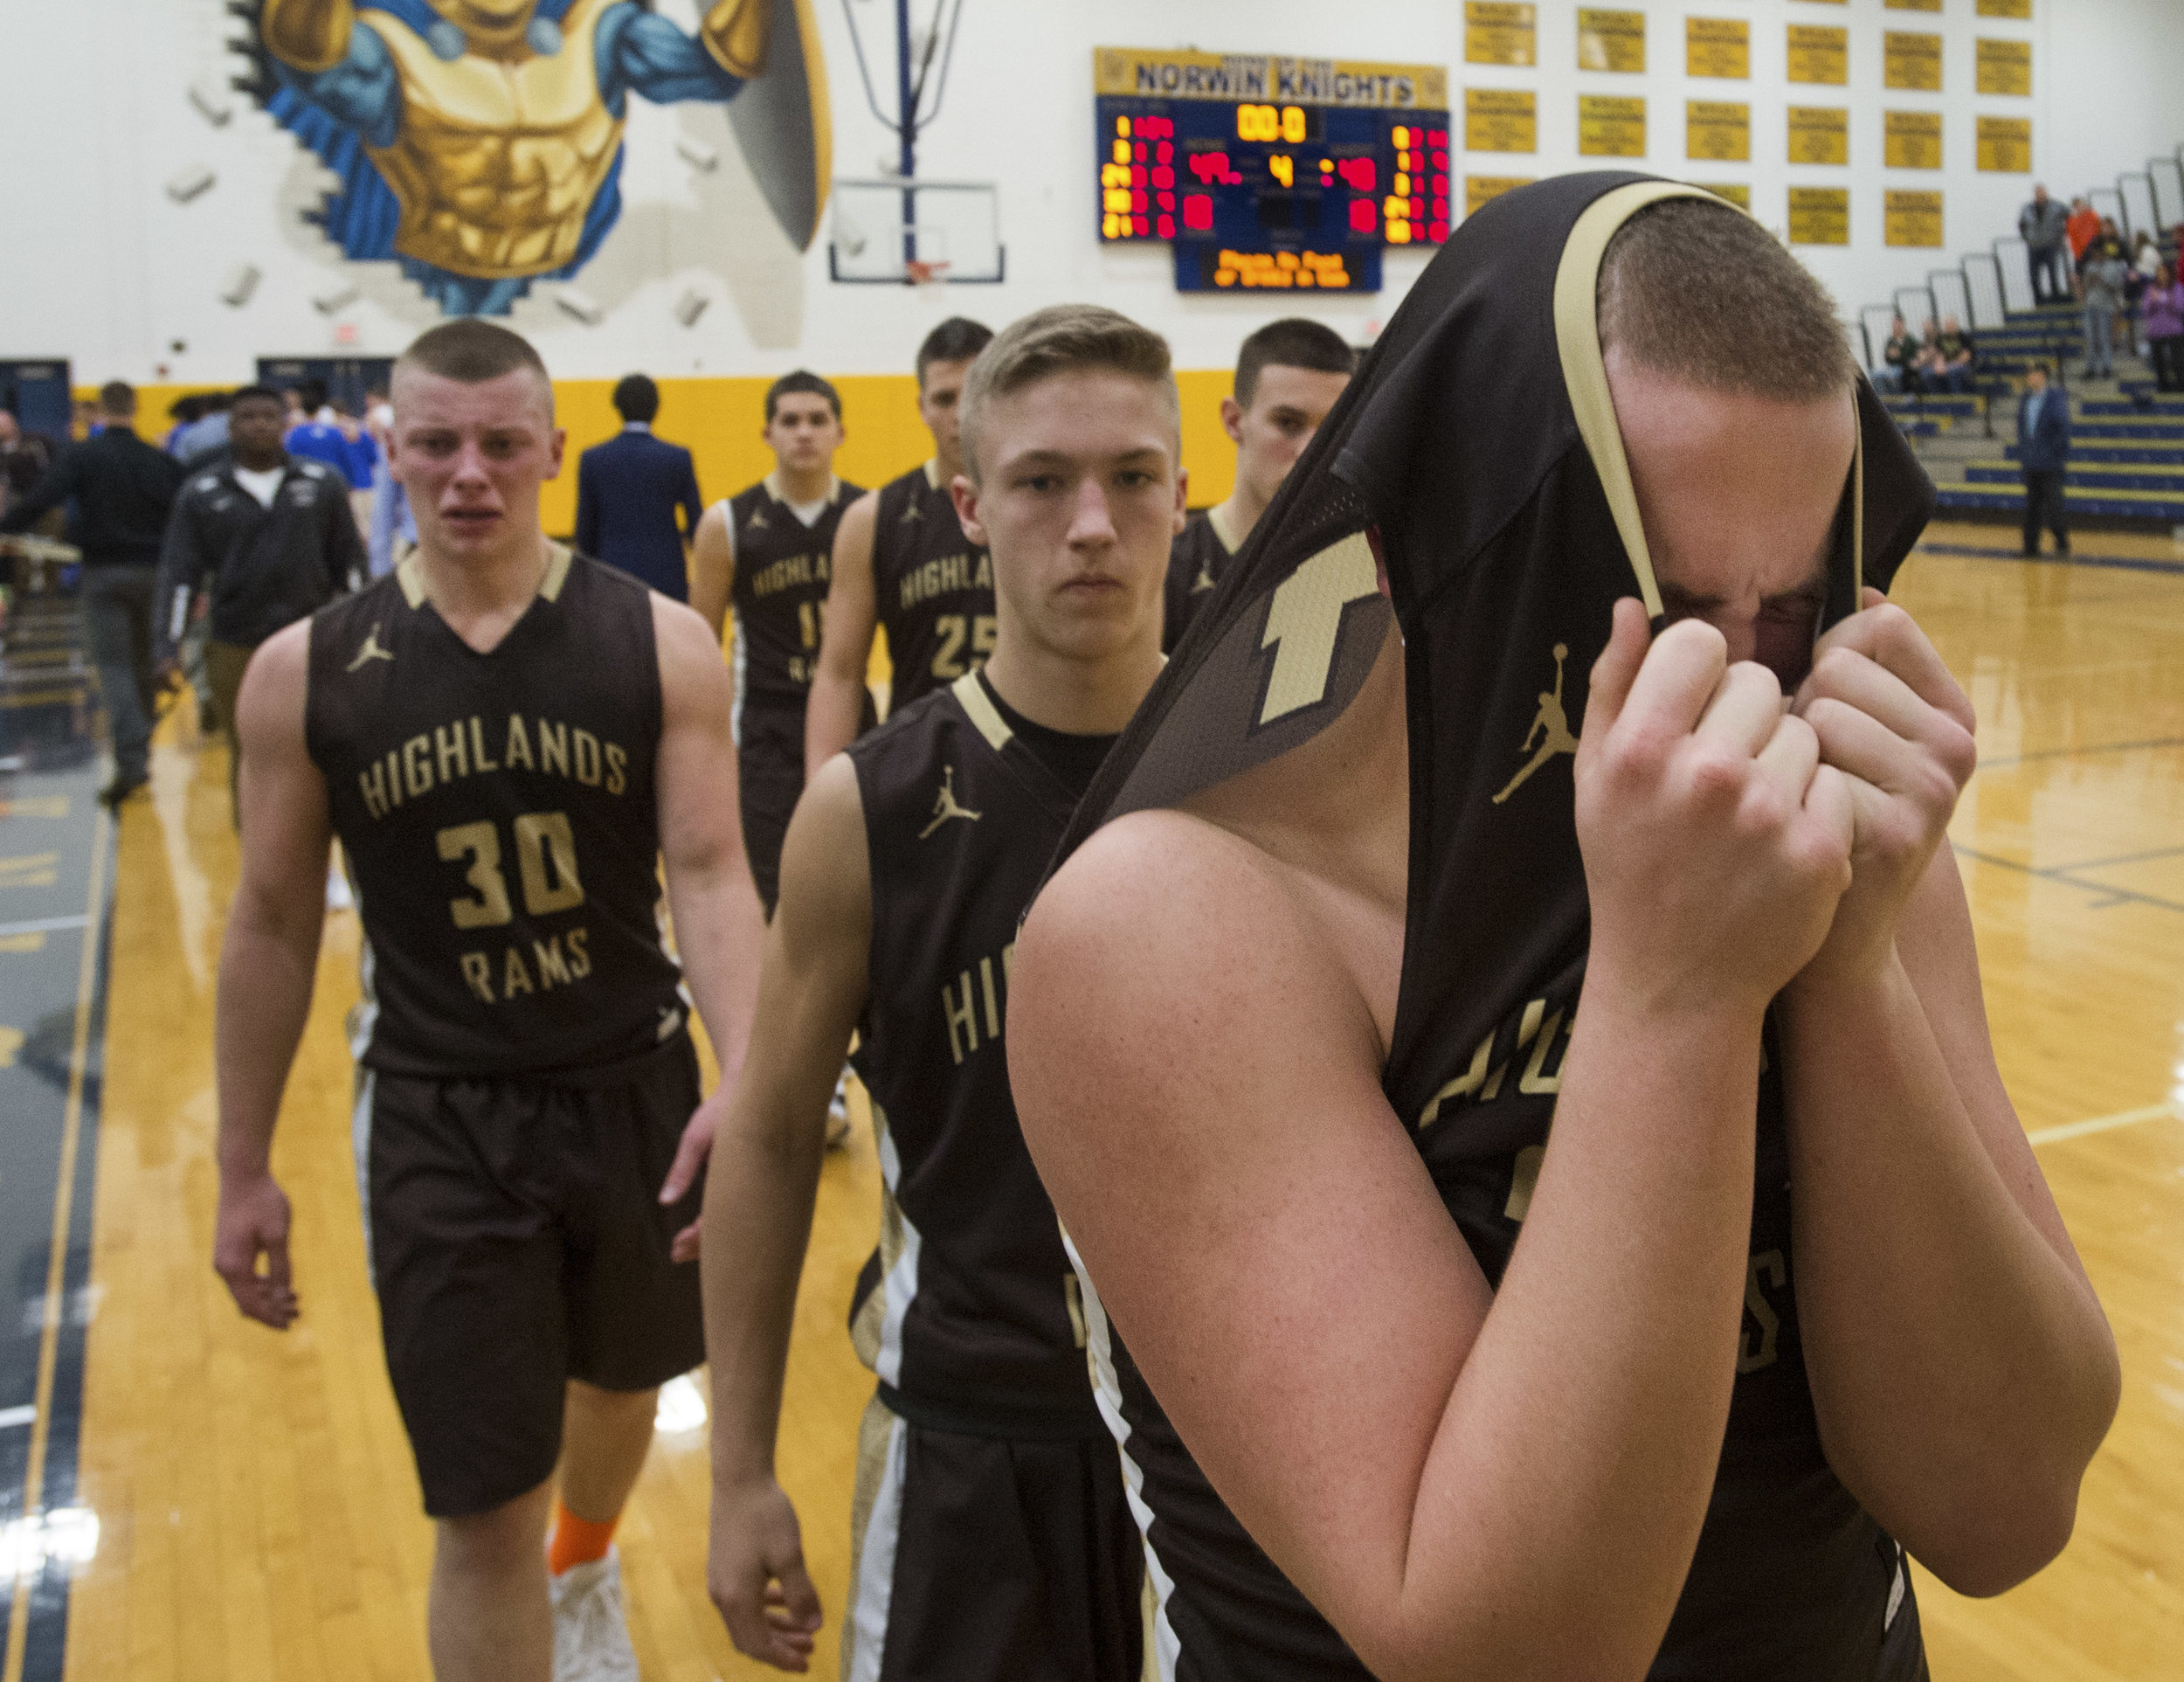 Highlands' RJ Rieger reacts after his team's 49-48 loss to Laurel Highlands during a WPIAL playoff game at Norwin High School in North Huntingdon, Pa. on Tuesday Feb. 21, 2017. (Steph Chambers | Tribune-Review)